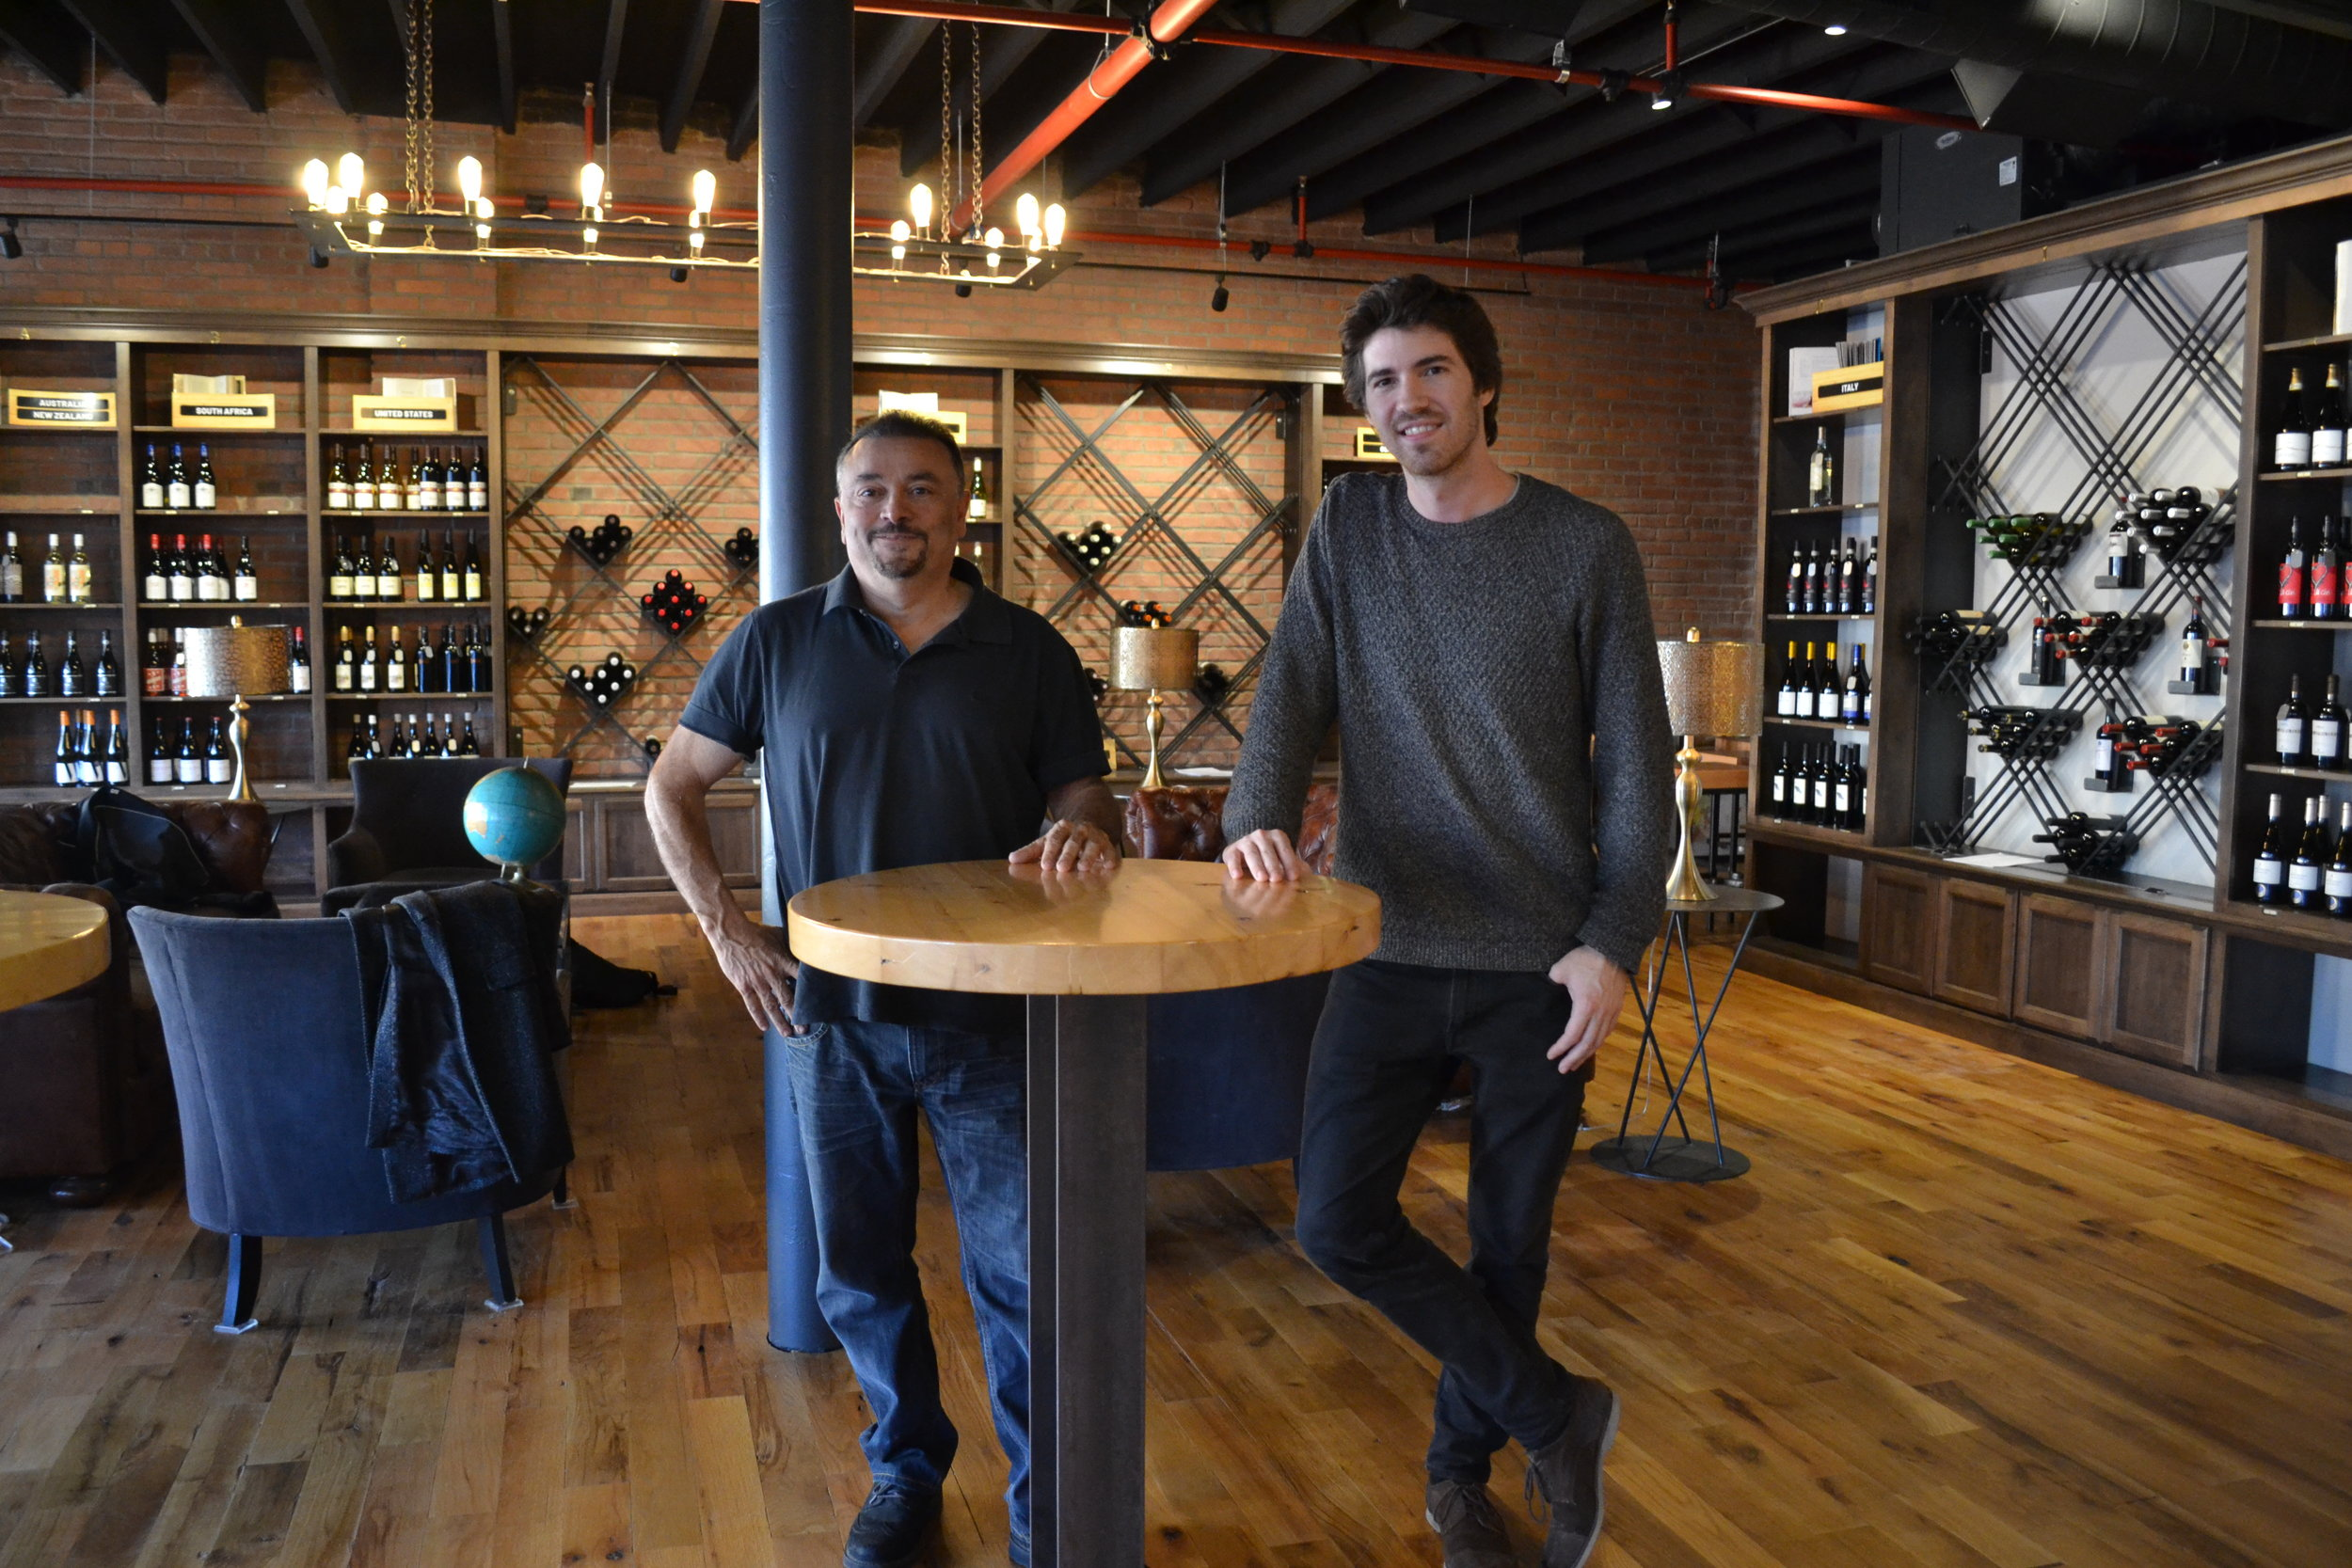 Anthony DiCio, Owner, and Bruno Leca, General Manager, in the Pennsylvania Market's wine library